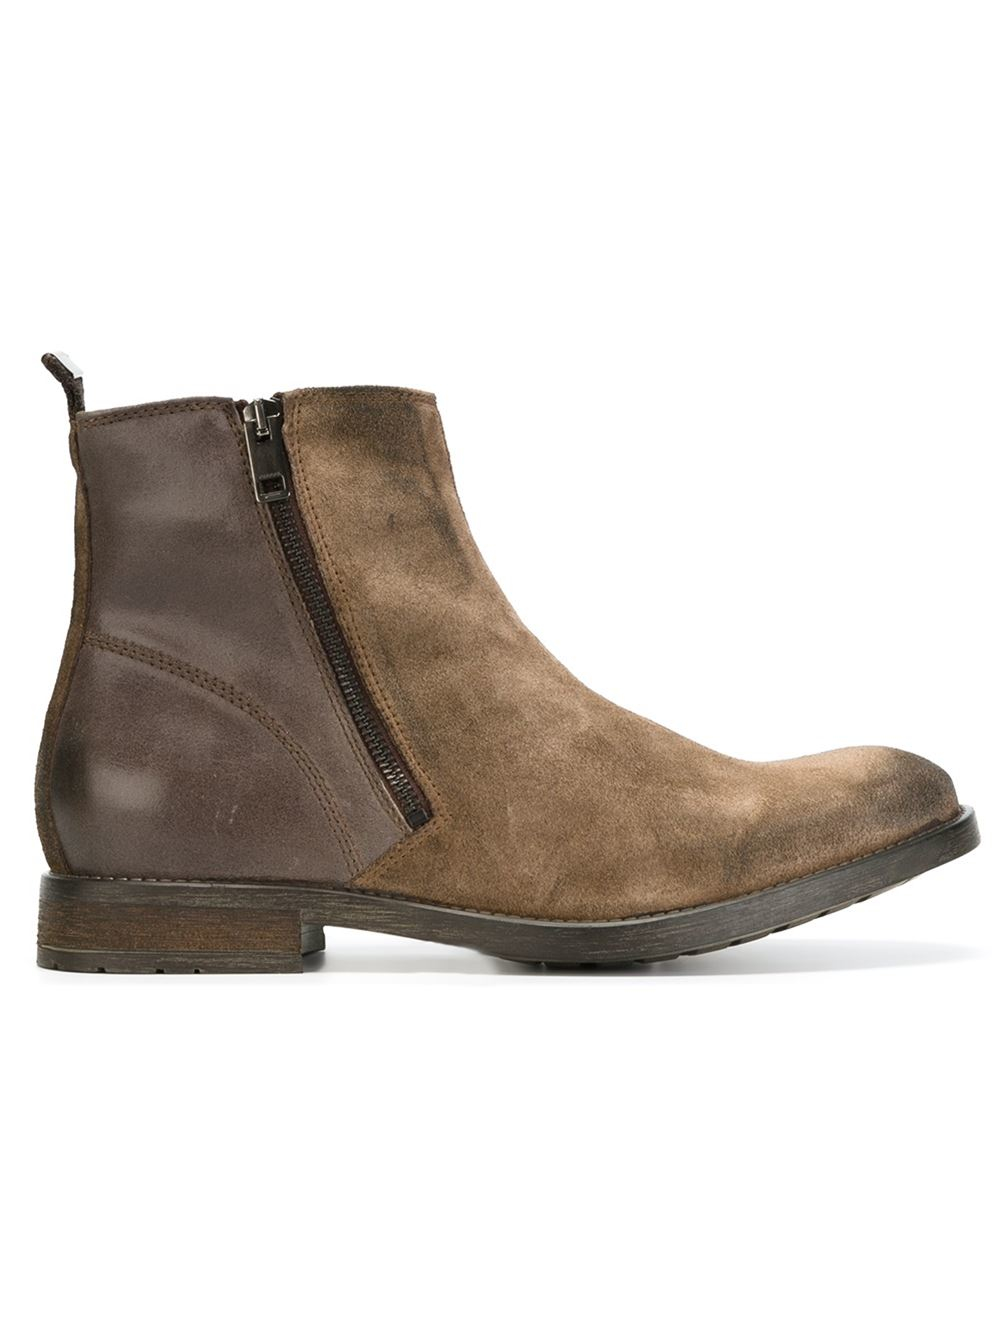 Diesel D Anklyx Ankle Boots In Brown For Men Lyst